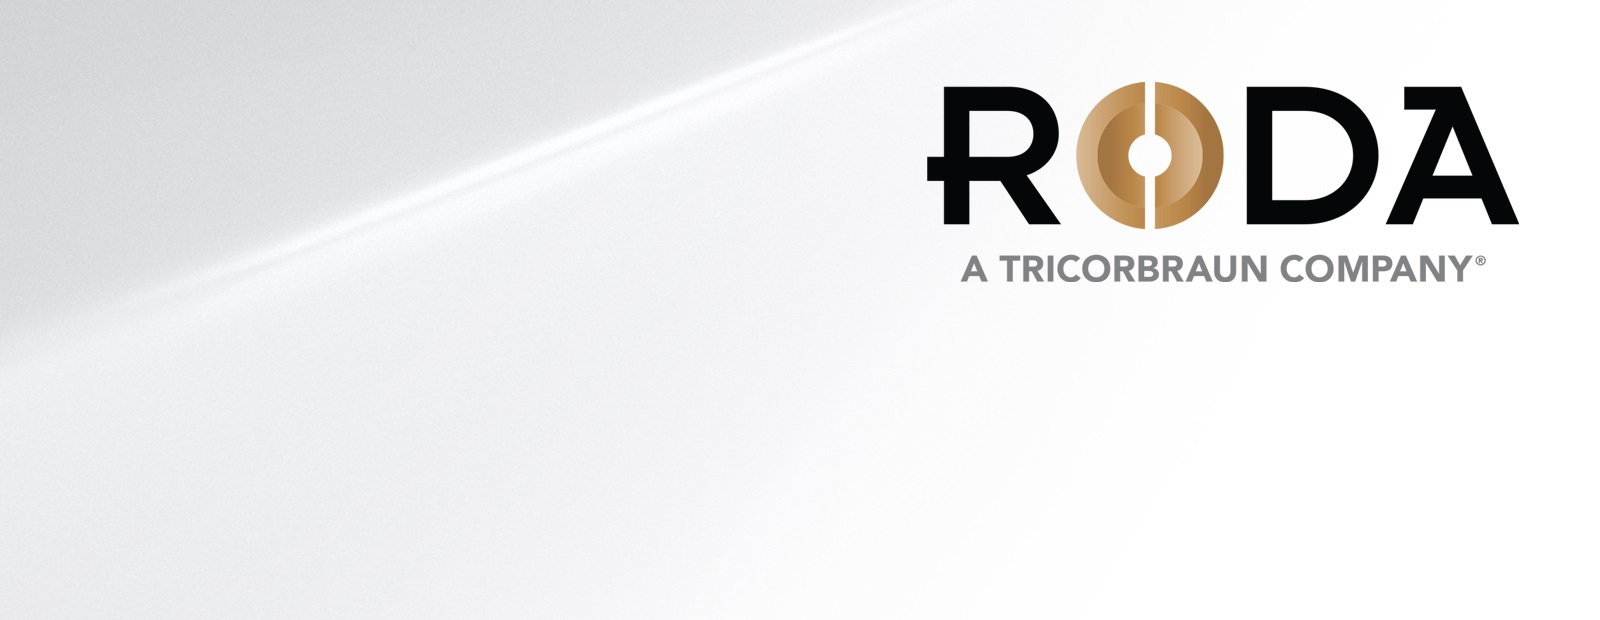 TricorBraun Acquires RODA Packaging, Expanding Services in Canada